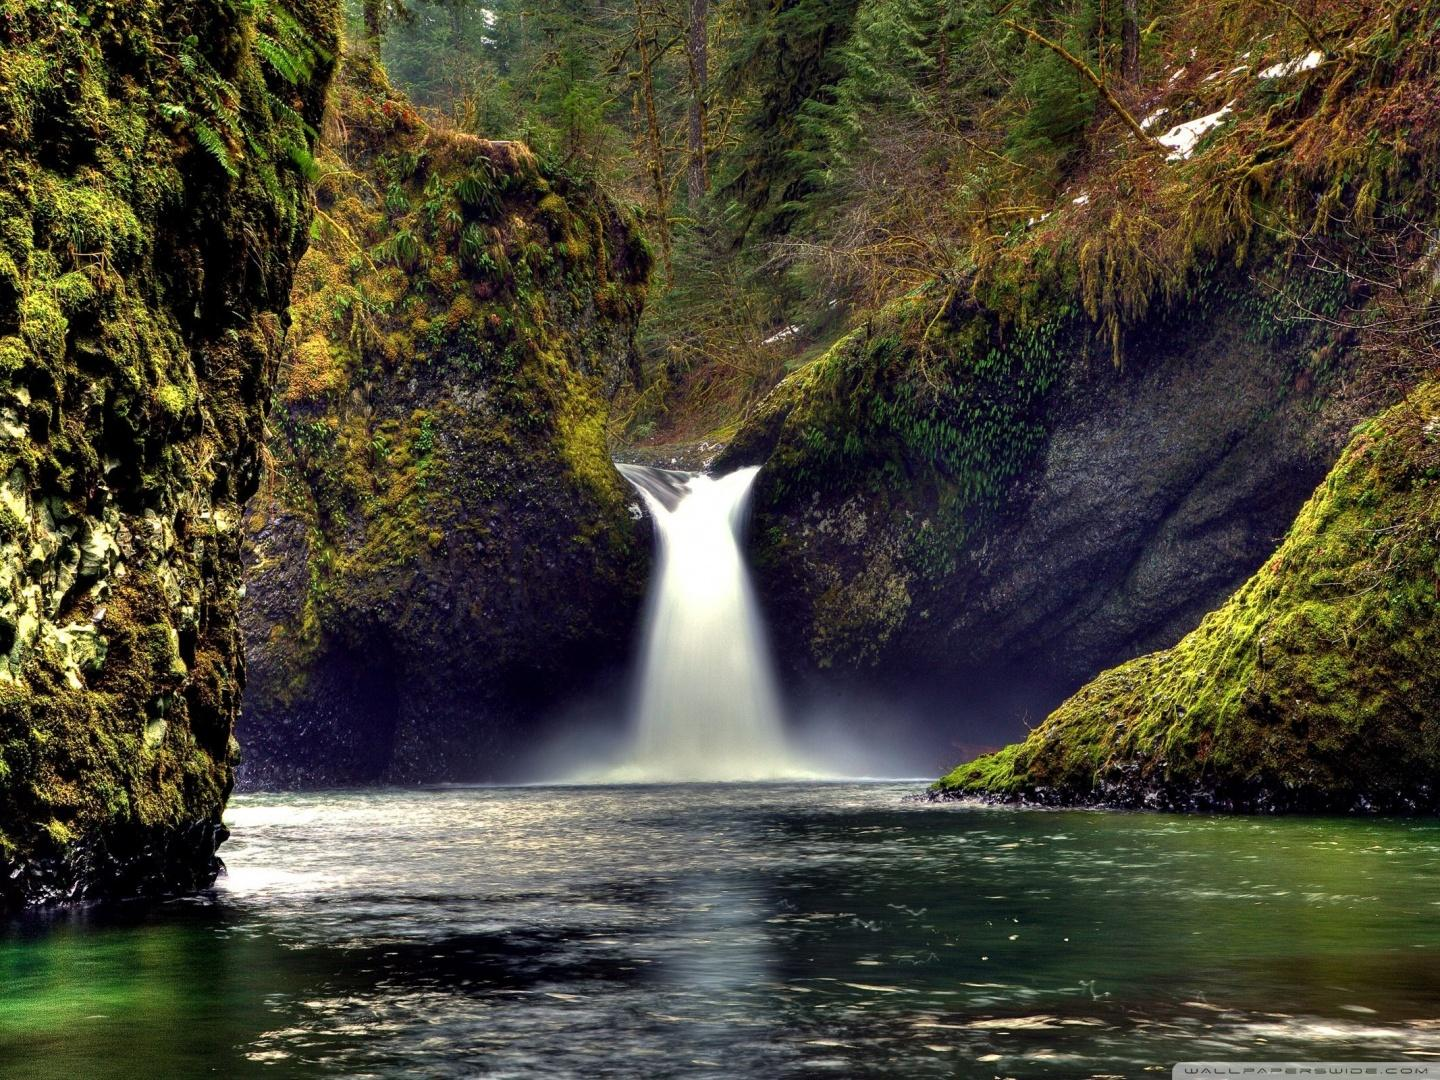 Hd photos download for free tropical waterfall voltagebd Image collections